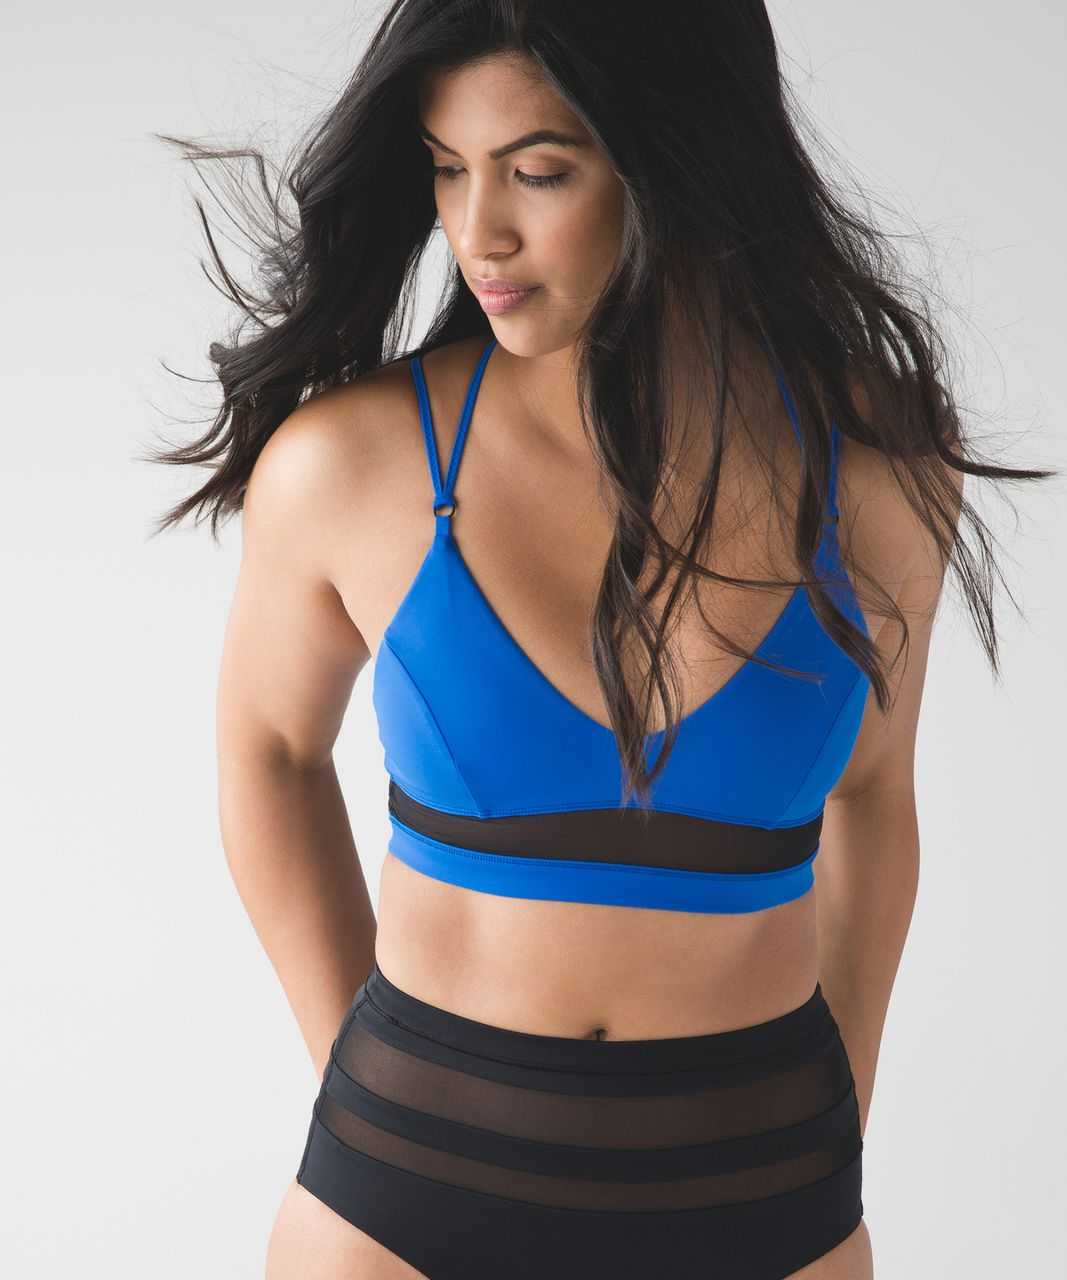 Lululemon Go With The Flow Top - Pipe Dream Blue / Black